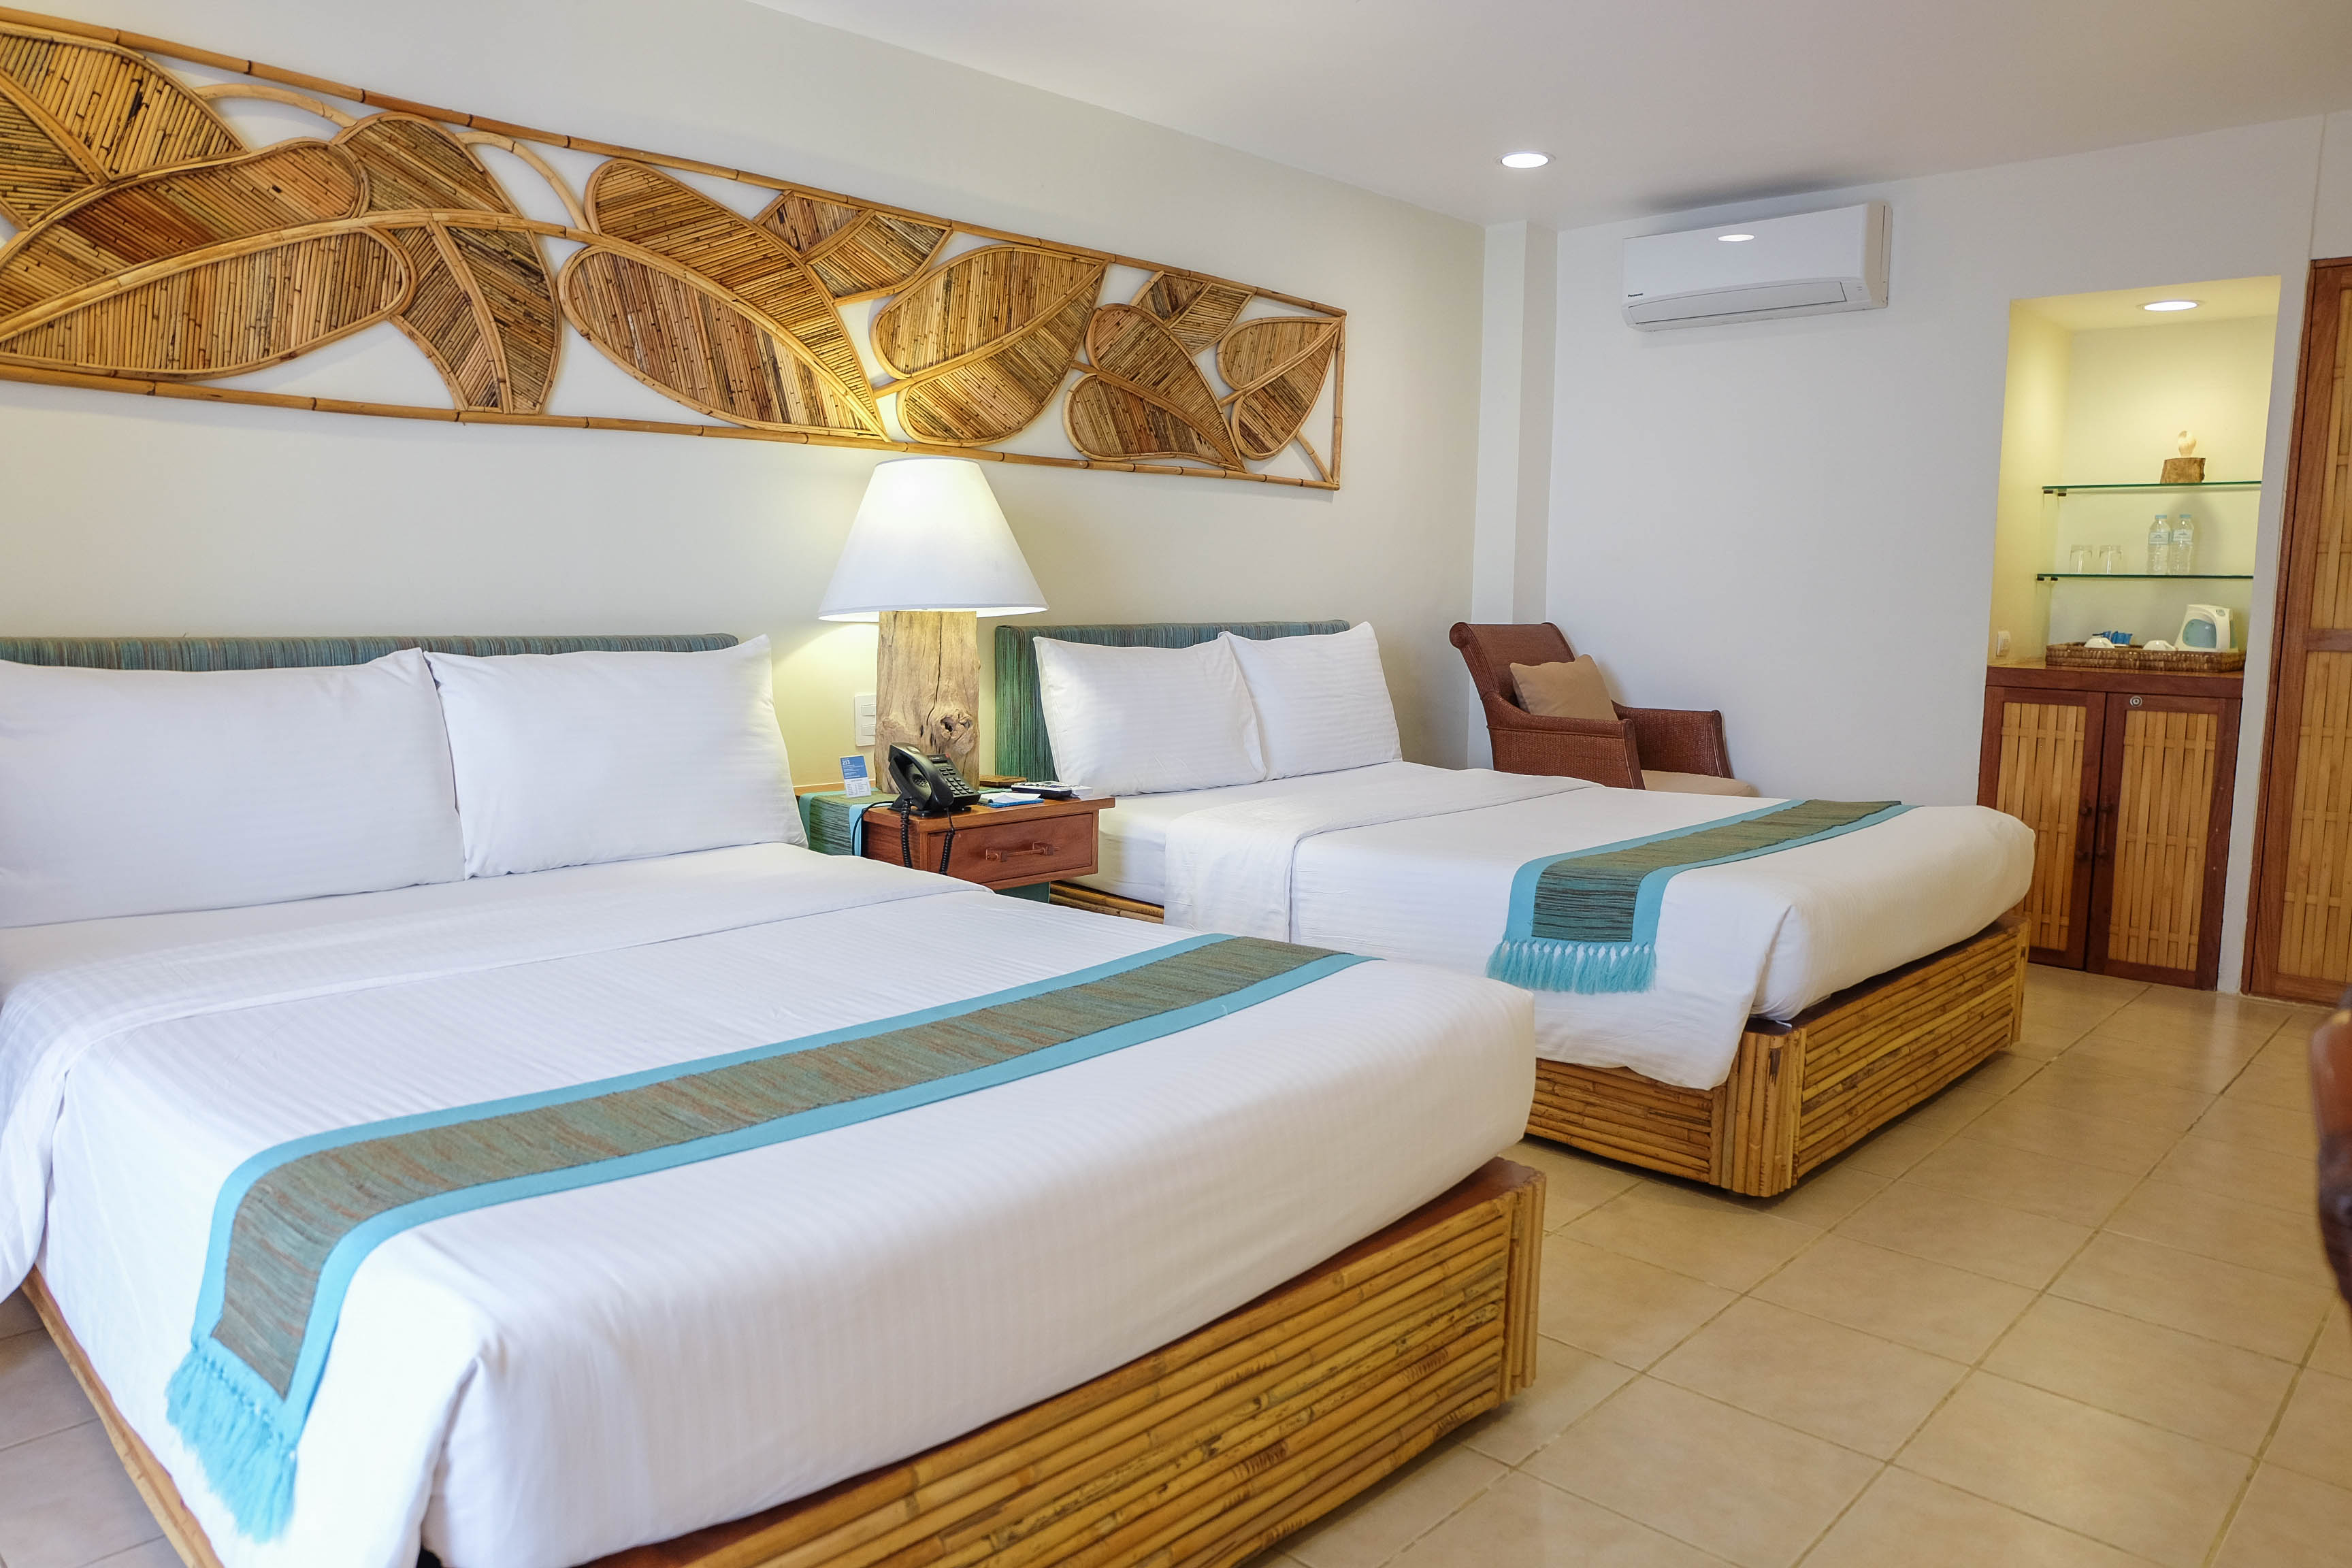 Package Deal to Cebu with Bluewater Maribago Resort & Philippine Airlines for 3 Days & 2 Nights - day 1